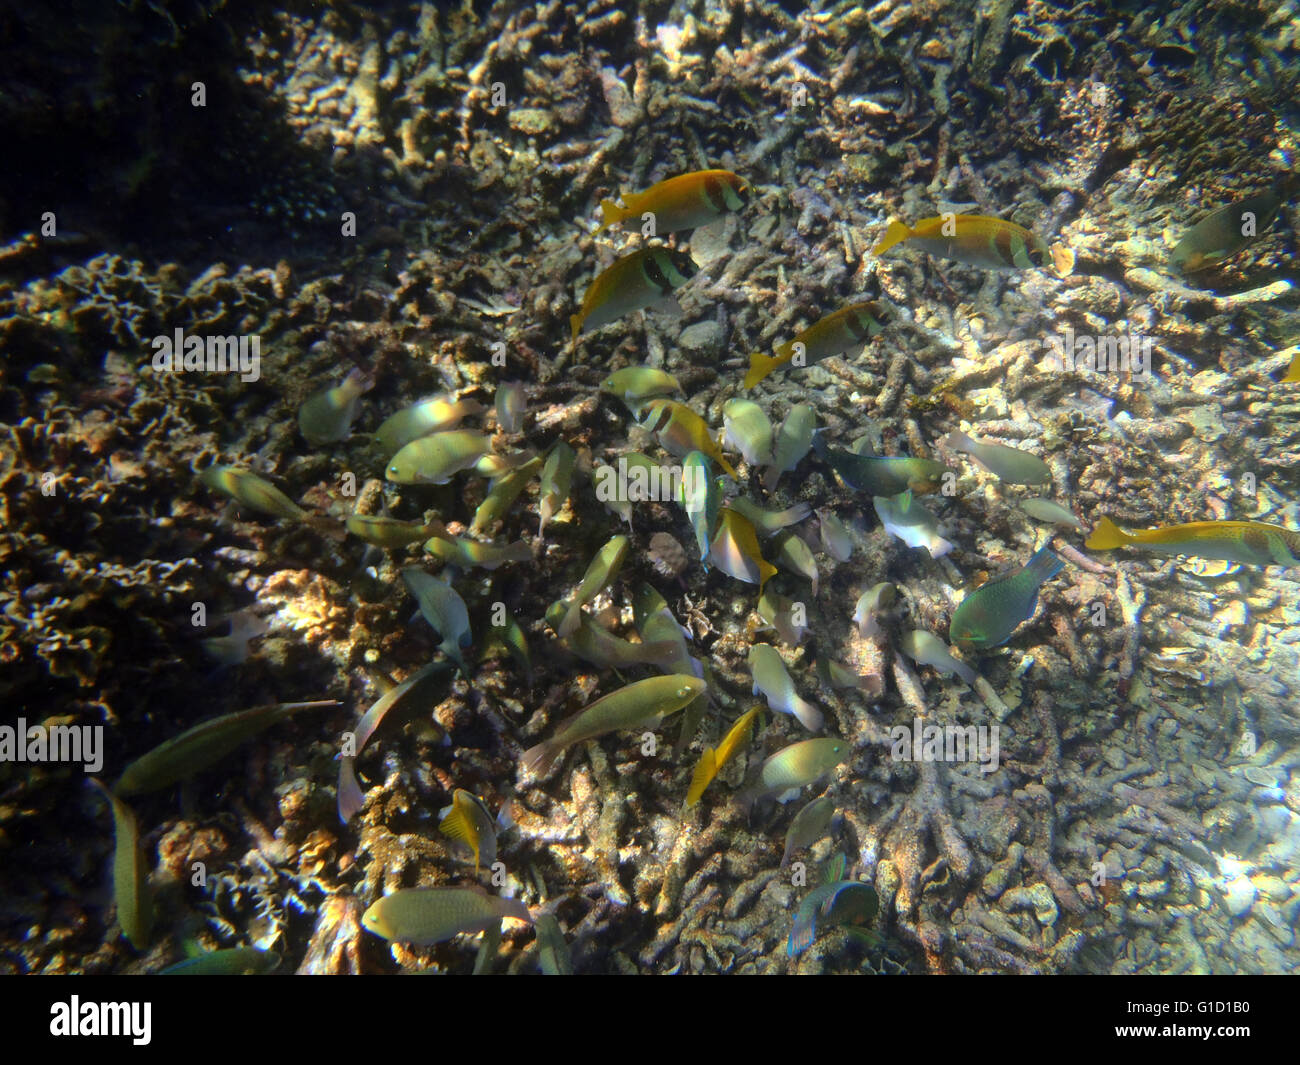 colorful coral reef with shoal of fishes scalefin anthias in tropical sea - Stock Image